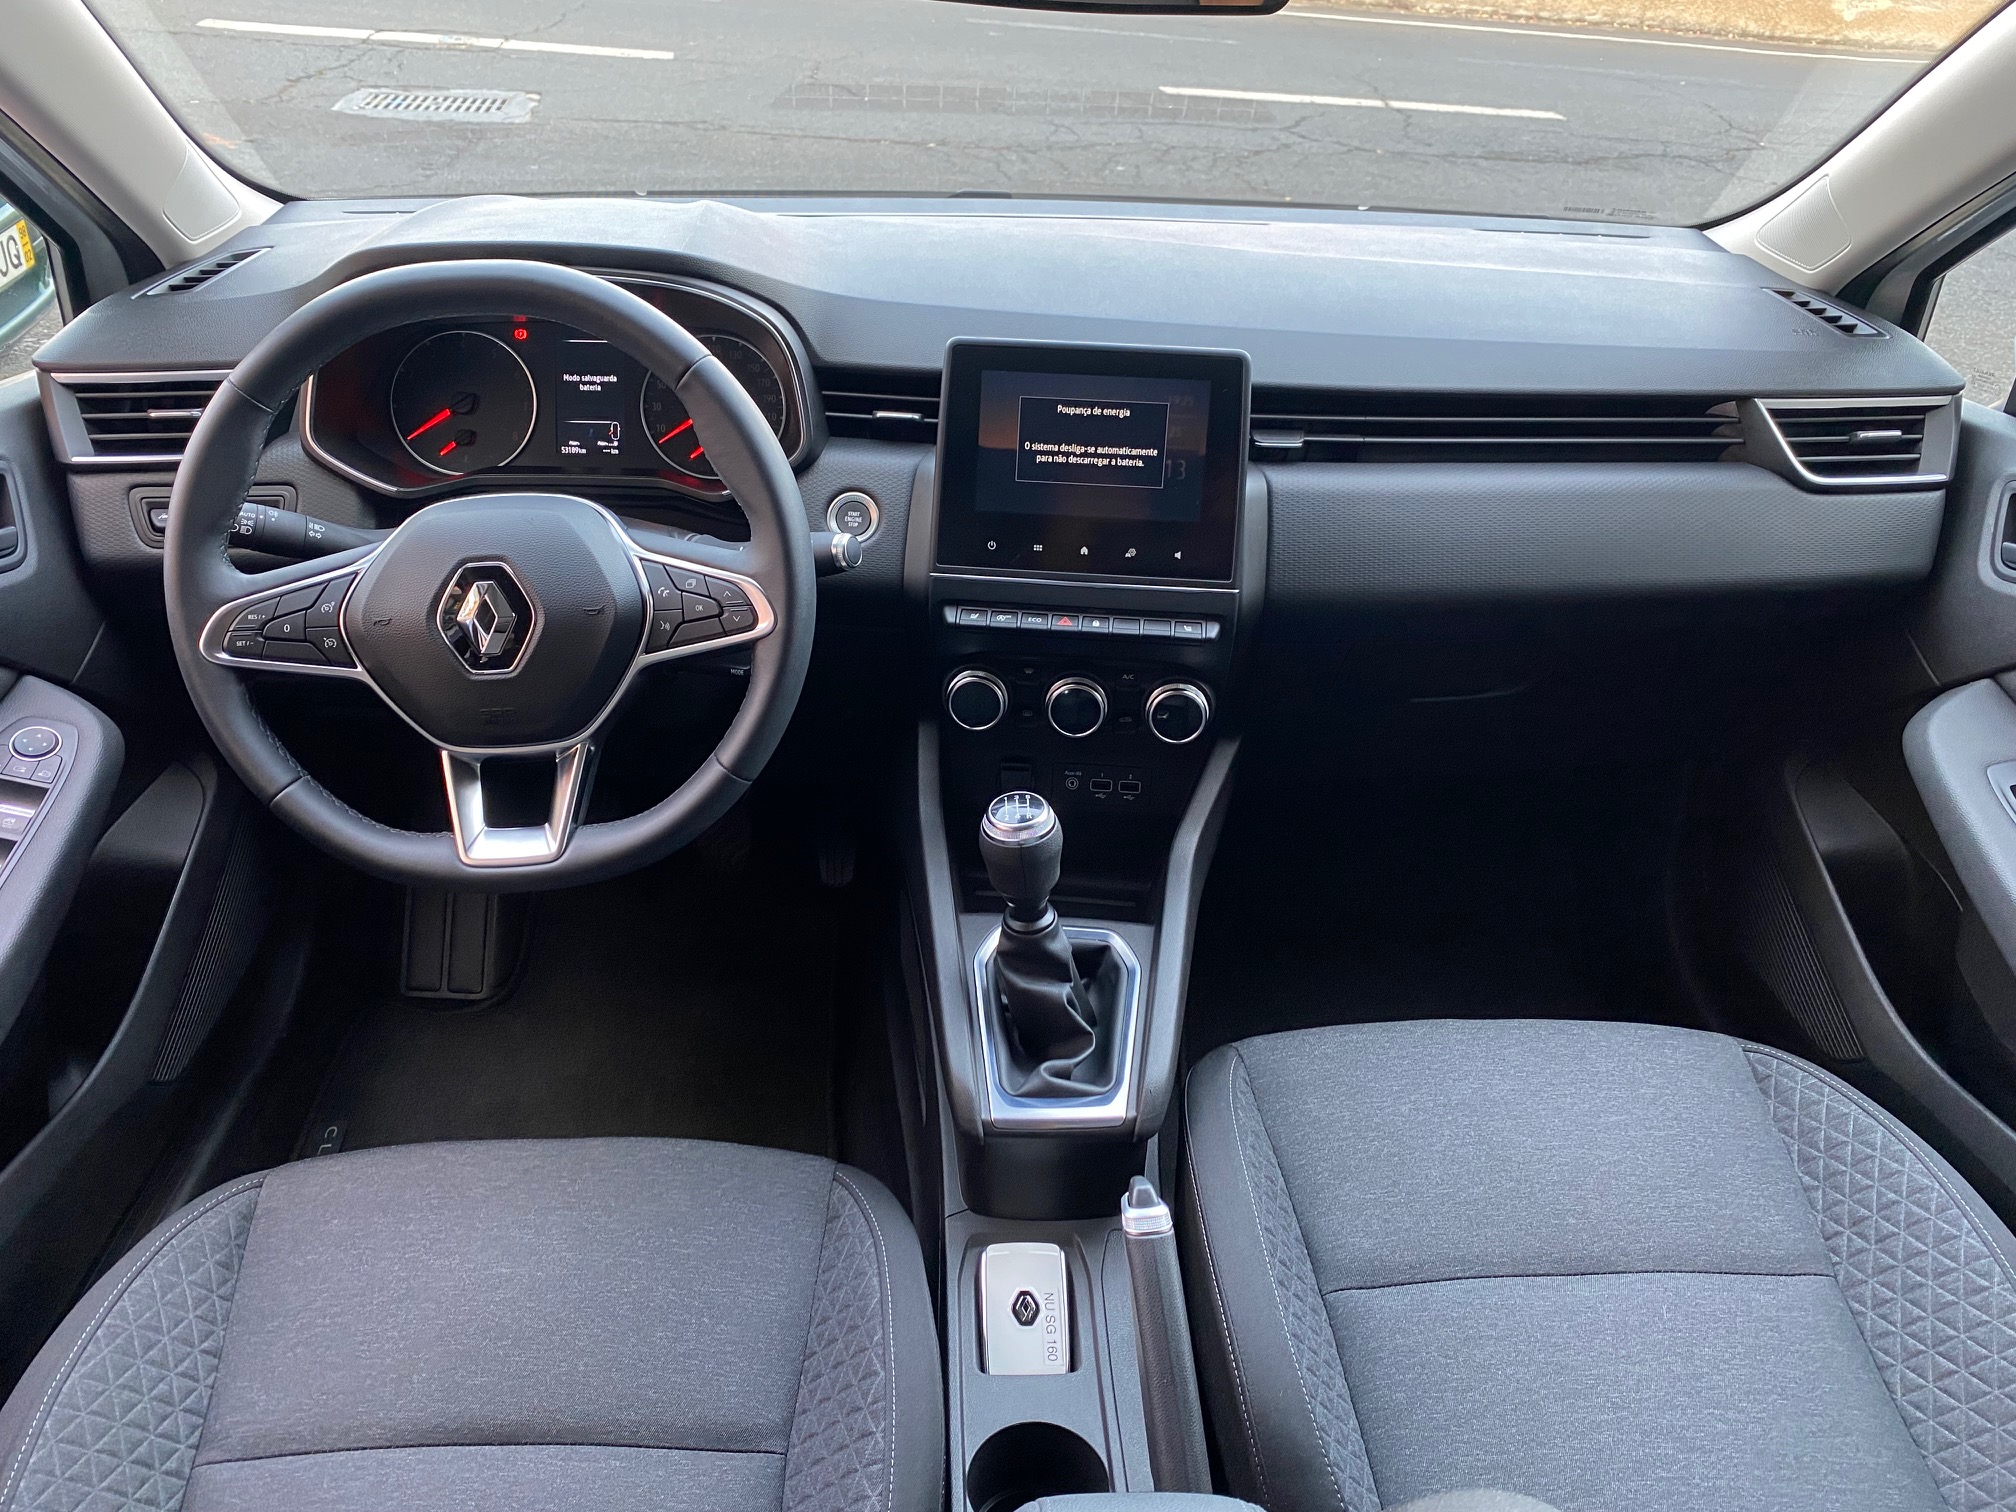 RENAULT CLIO 0.9 Tce  – 90 cv – Ano-2020/02